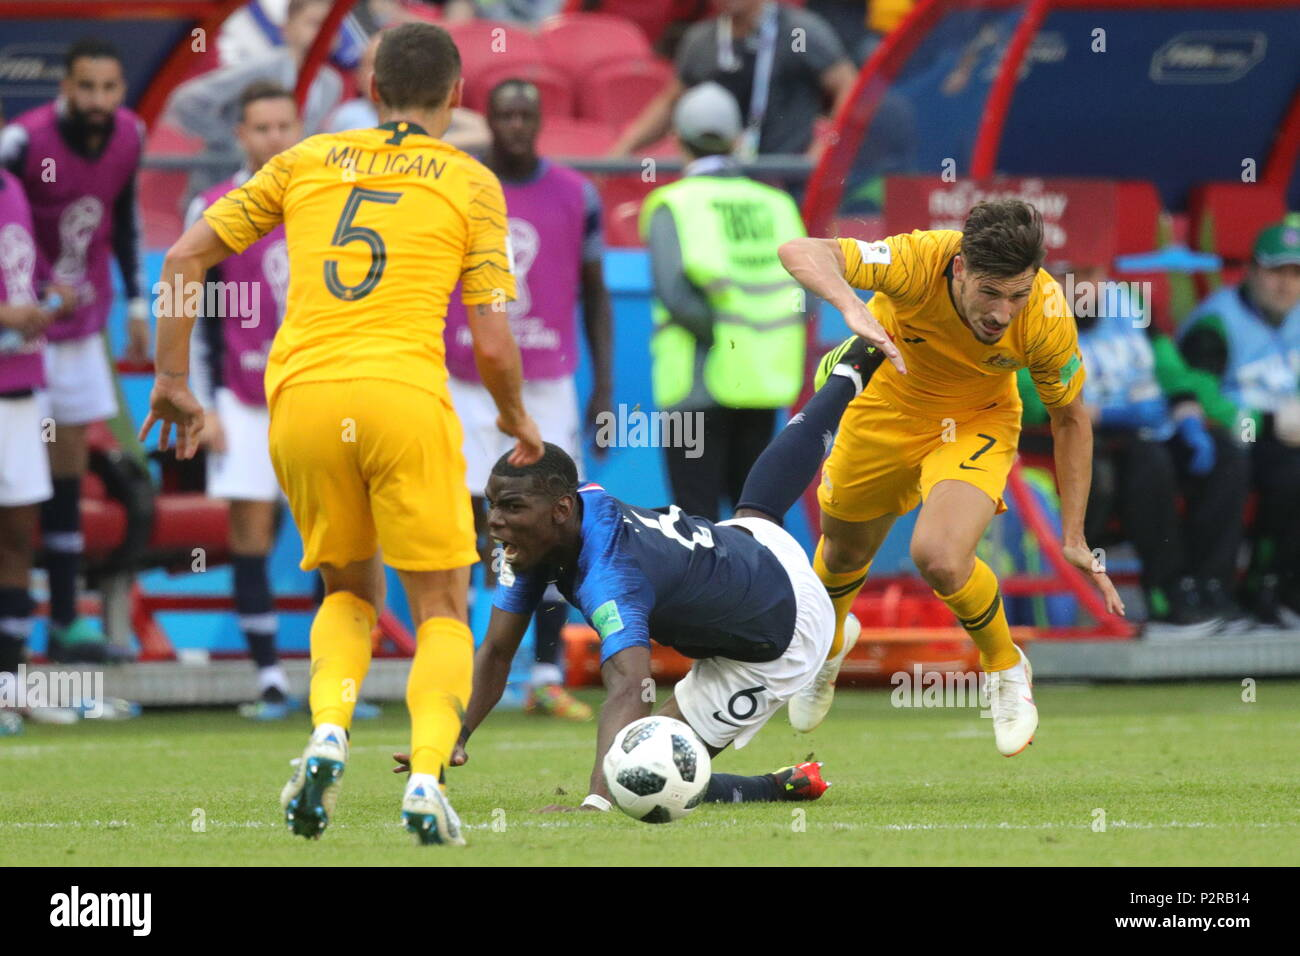 Kazan, Russia. 16th June, 2018. KAZAN, RUSSIA - JUNE 16, 2018: France's Paul Pogba (C), Australia's Mark Milligan (L) and Mathew Leckie in their 2018 FIFA World Cup Group C Round 1 match against Australia at Kazan Arena Stadium; France wins 2-1. Sergei Bobylev/TASS Credit: ITAR-TASS News Agency/Alamy Live News Stock Photo